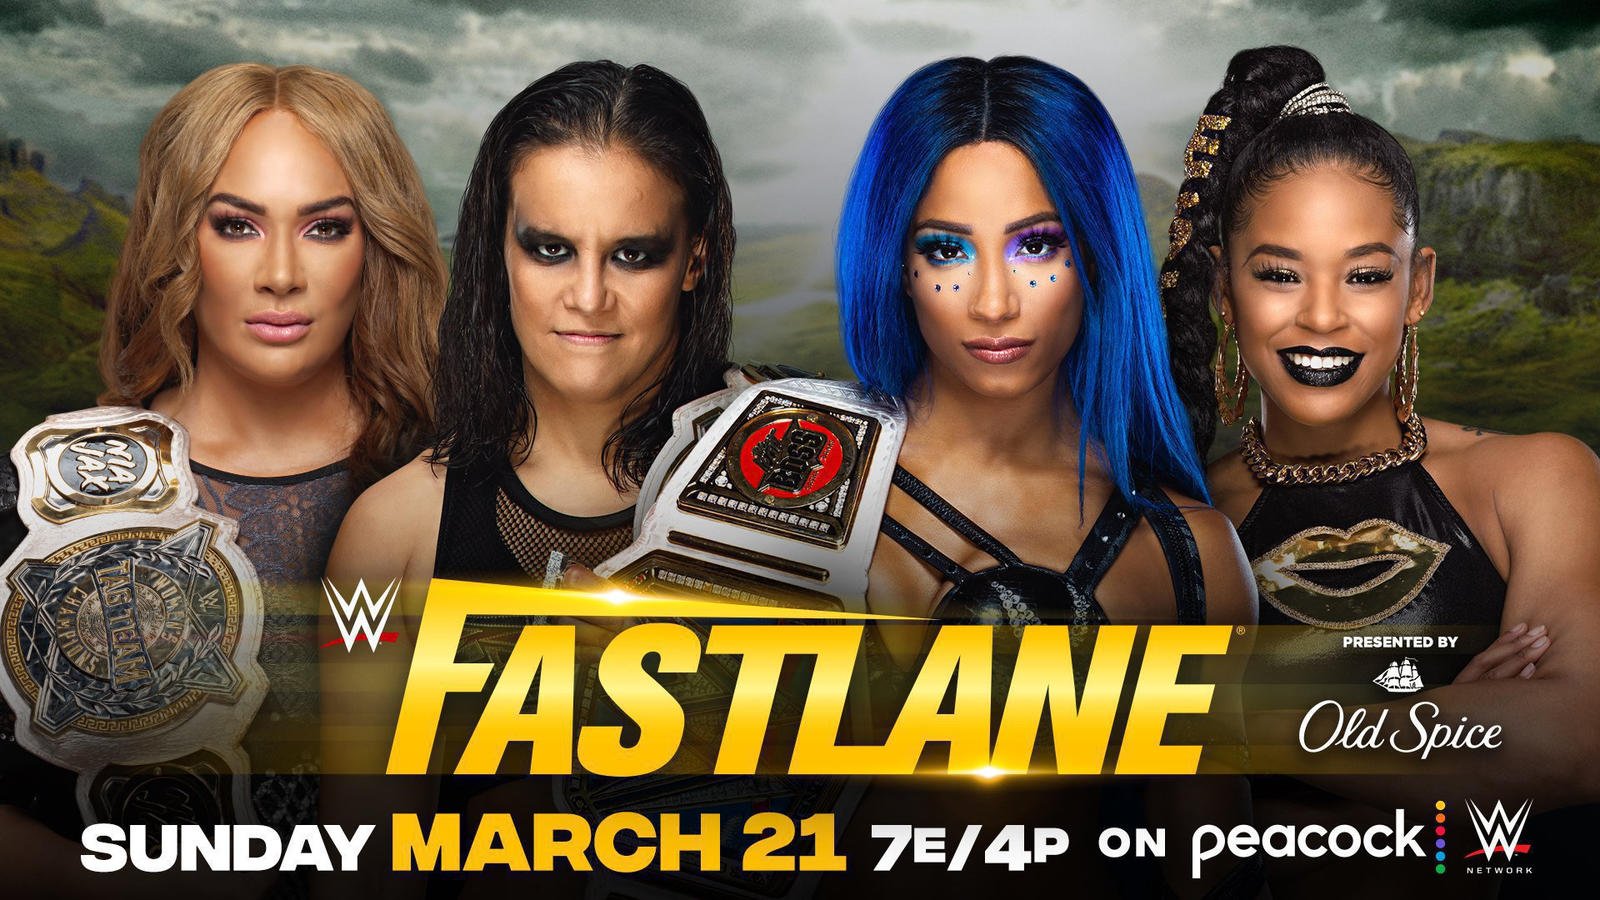 Women's Tag Team Championship Announced For Fastlane